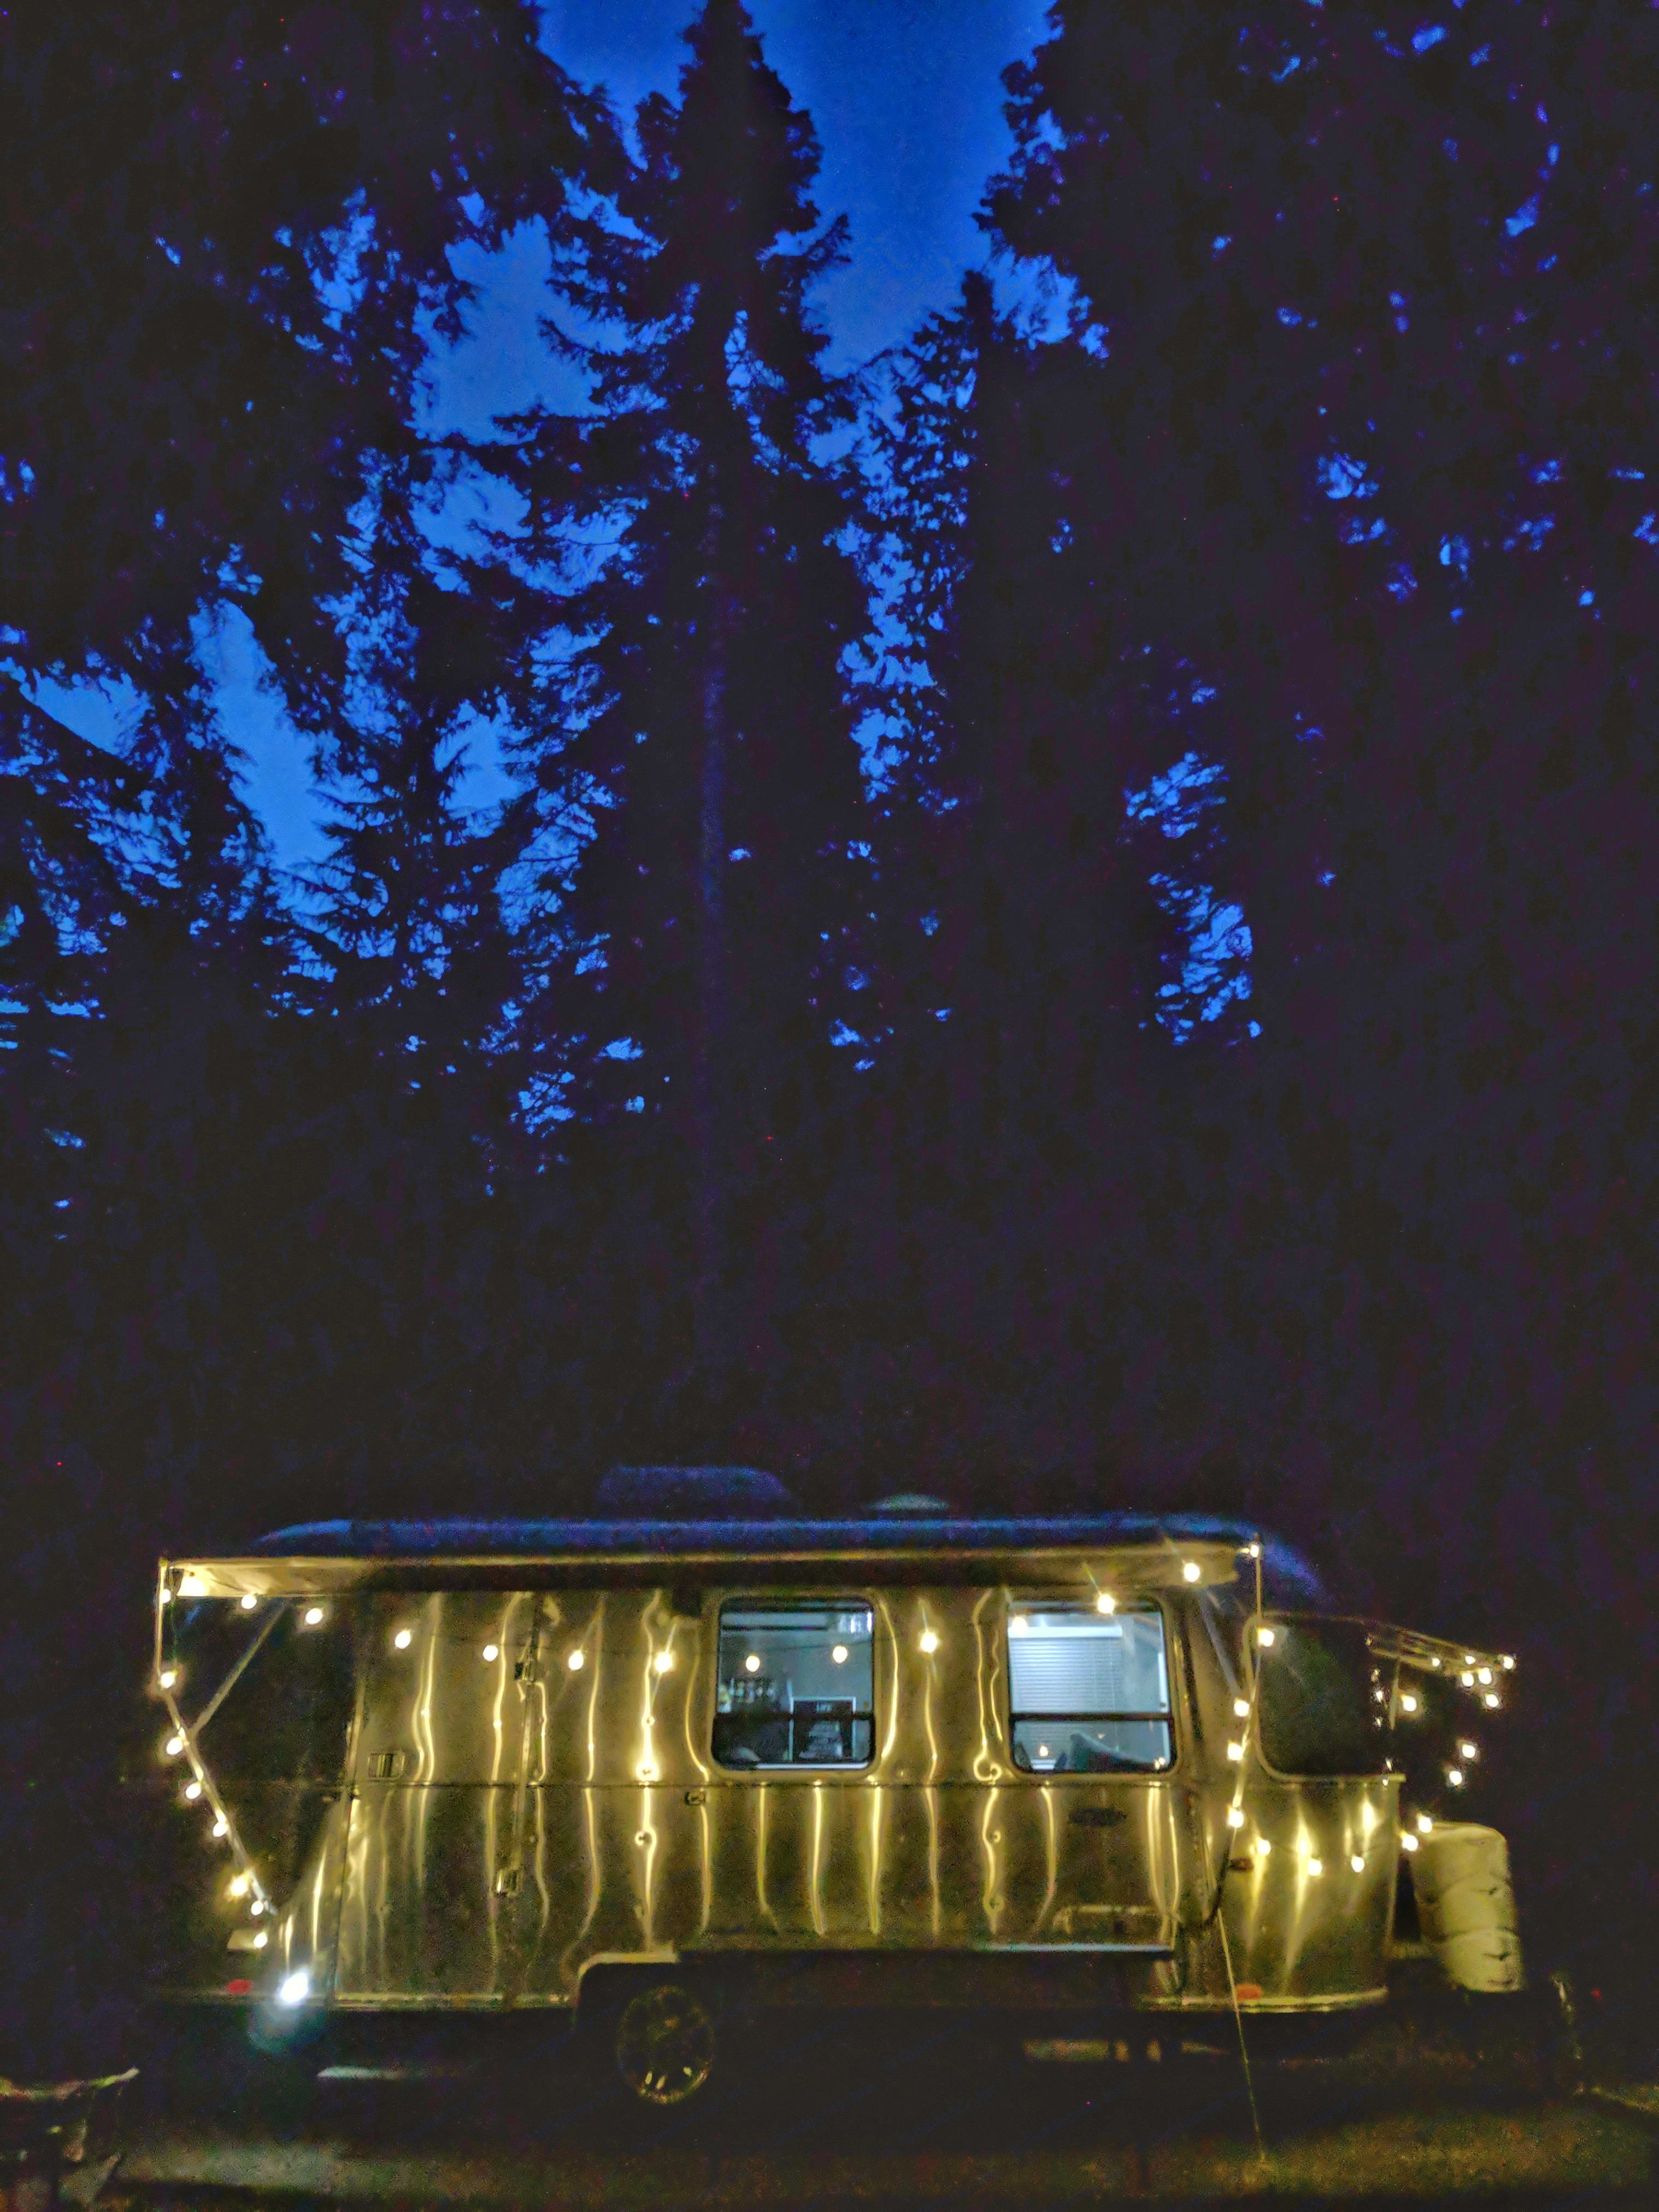 Everyone loves the look of an Airstream, especially with the awning out and lights hung for a hip camping feel!. Airstream Sport 2014